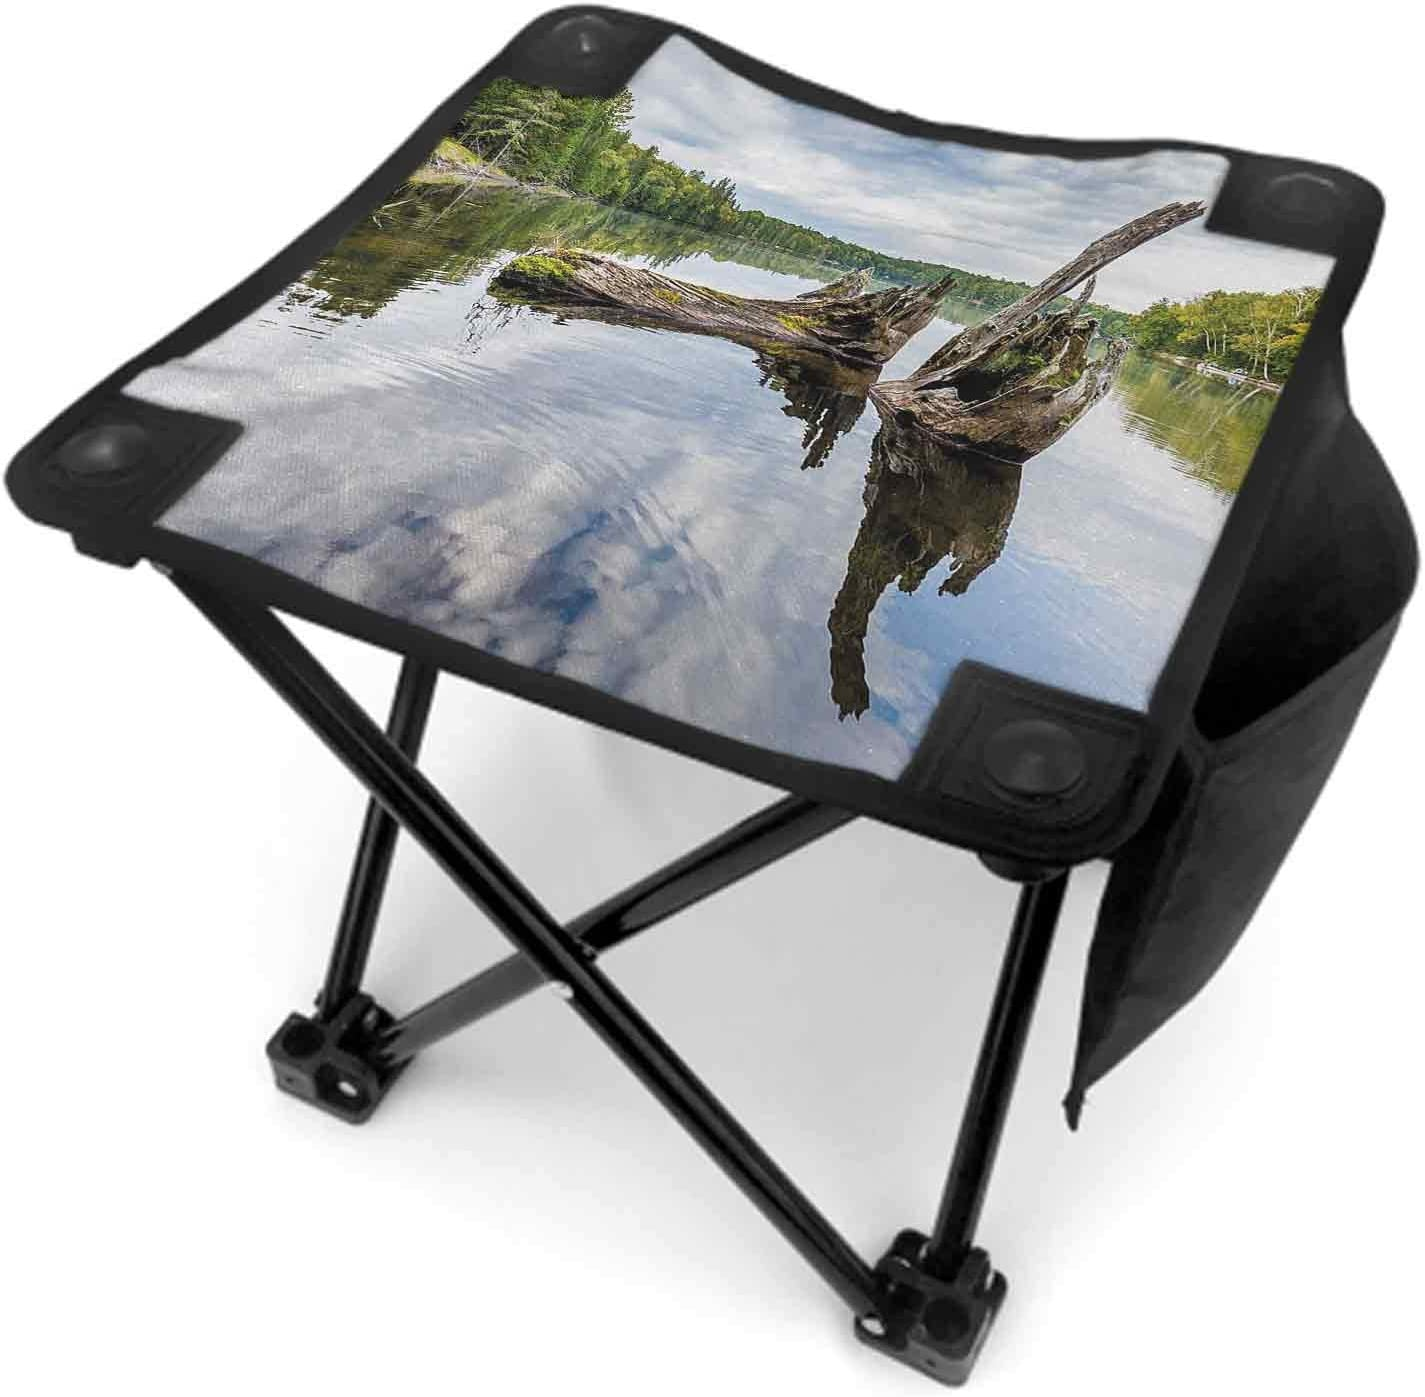 Driftwood Folding Stool with Carry Bag, Remains of a White Cedar Tree Trunk in The Lake and The Sky Digital Image Lightweight Sturdy Stool Green Pale Grey